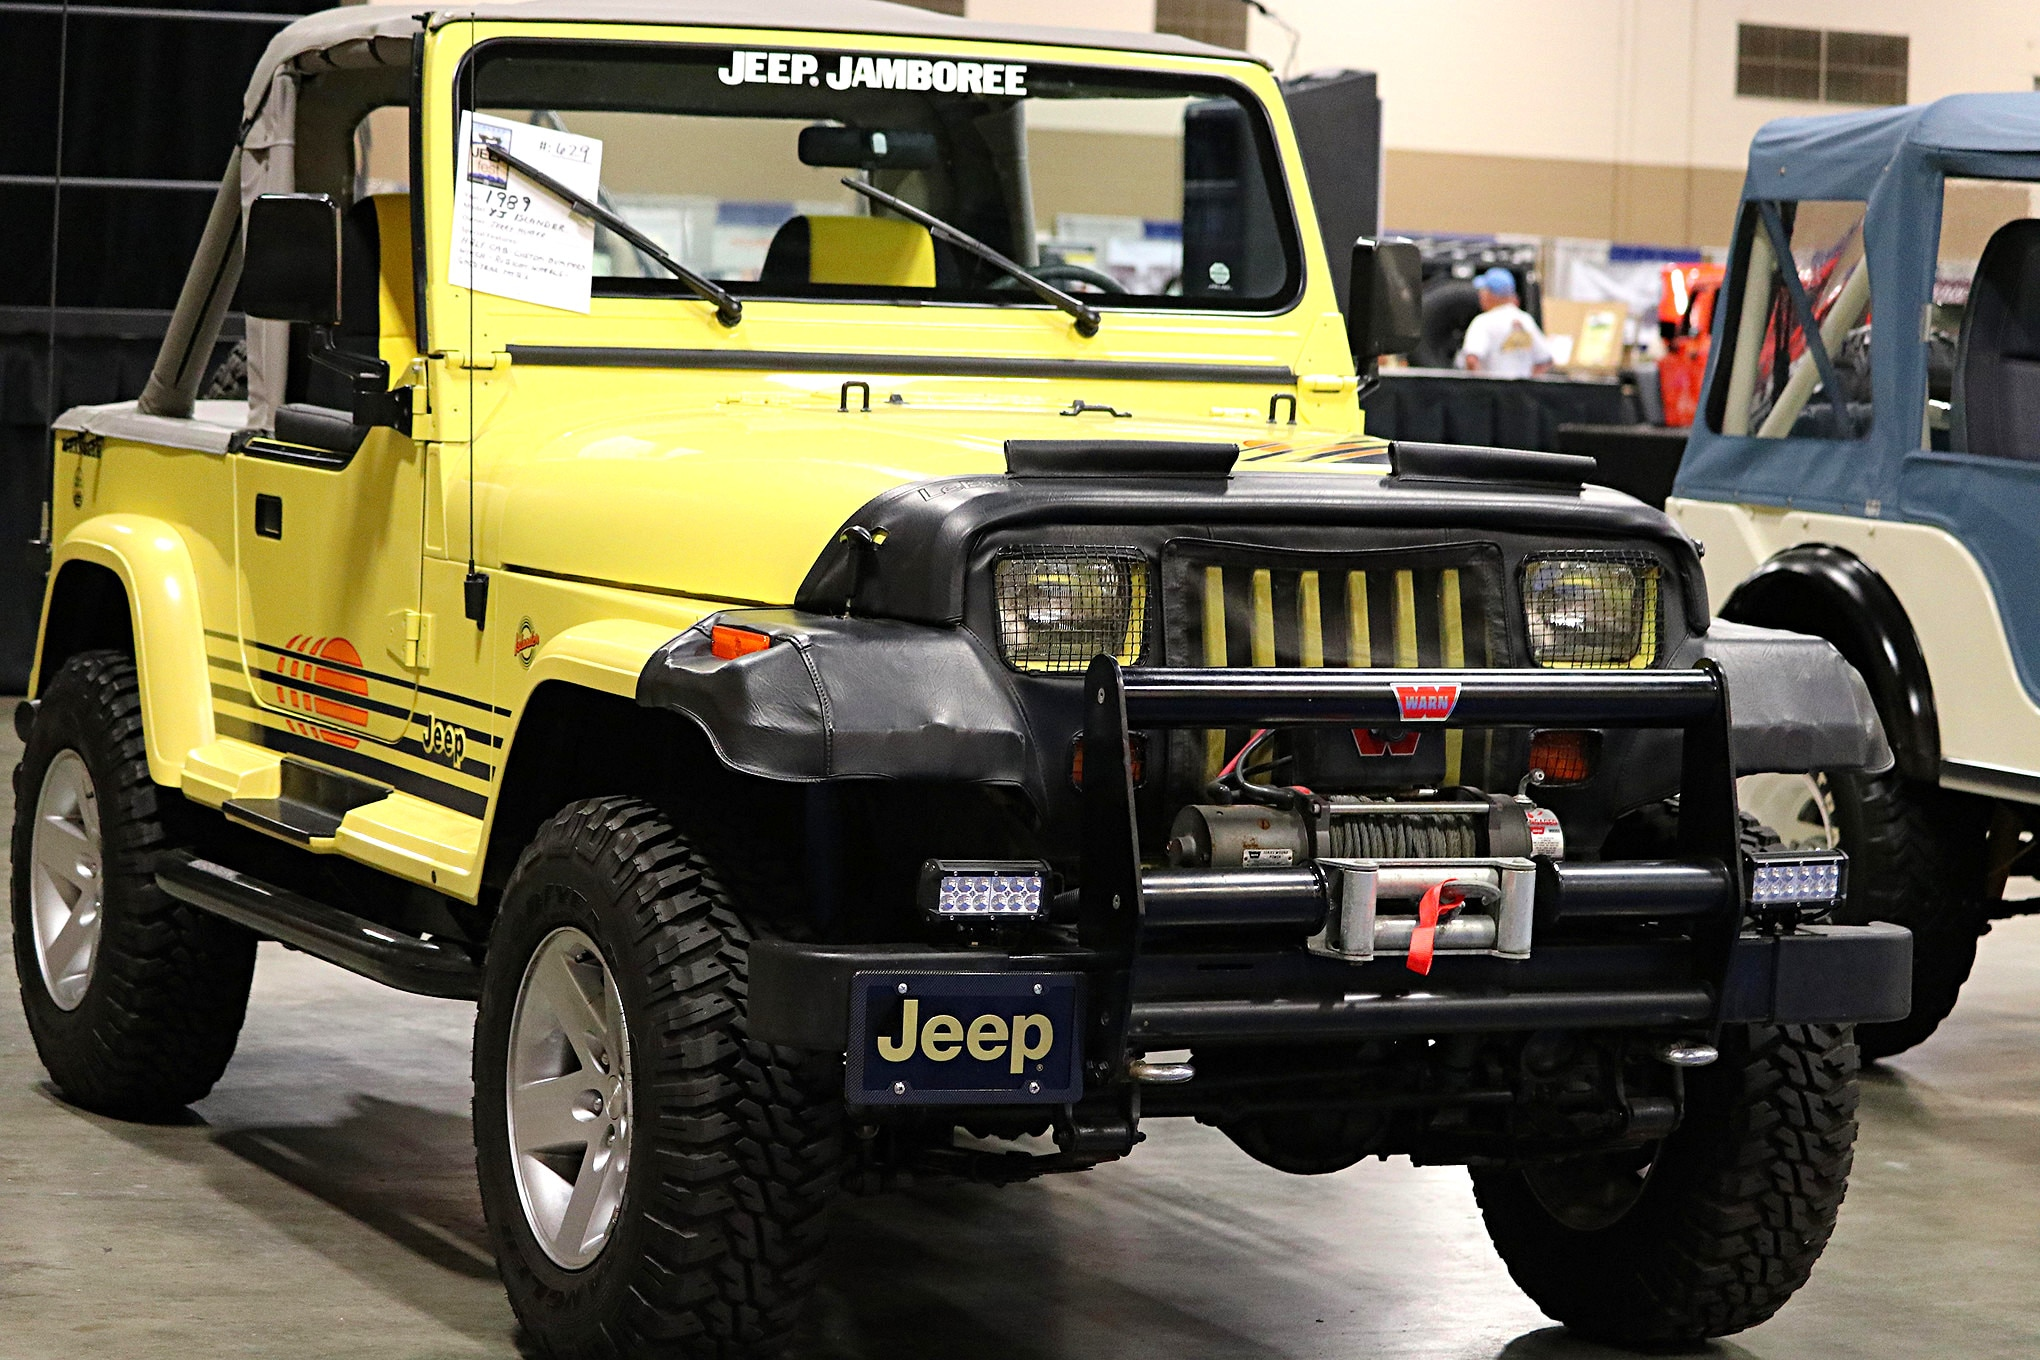 small resolution of former toledo plant manager jerry huber brought this 89 jeep yj islander to the show seen here with a half cab huber has added custom bumpers